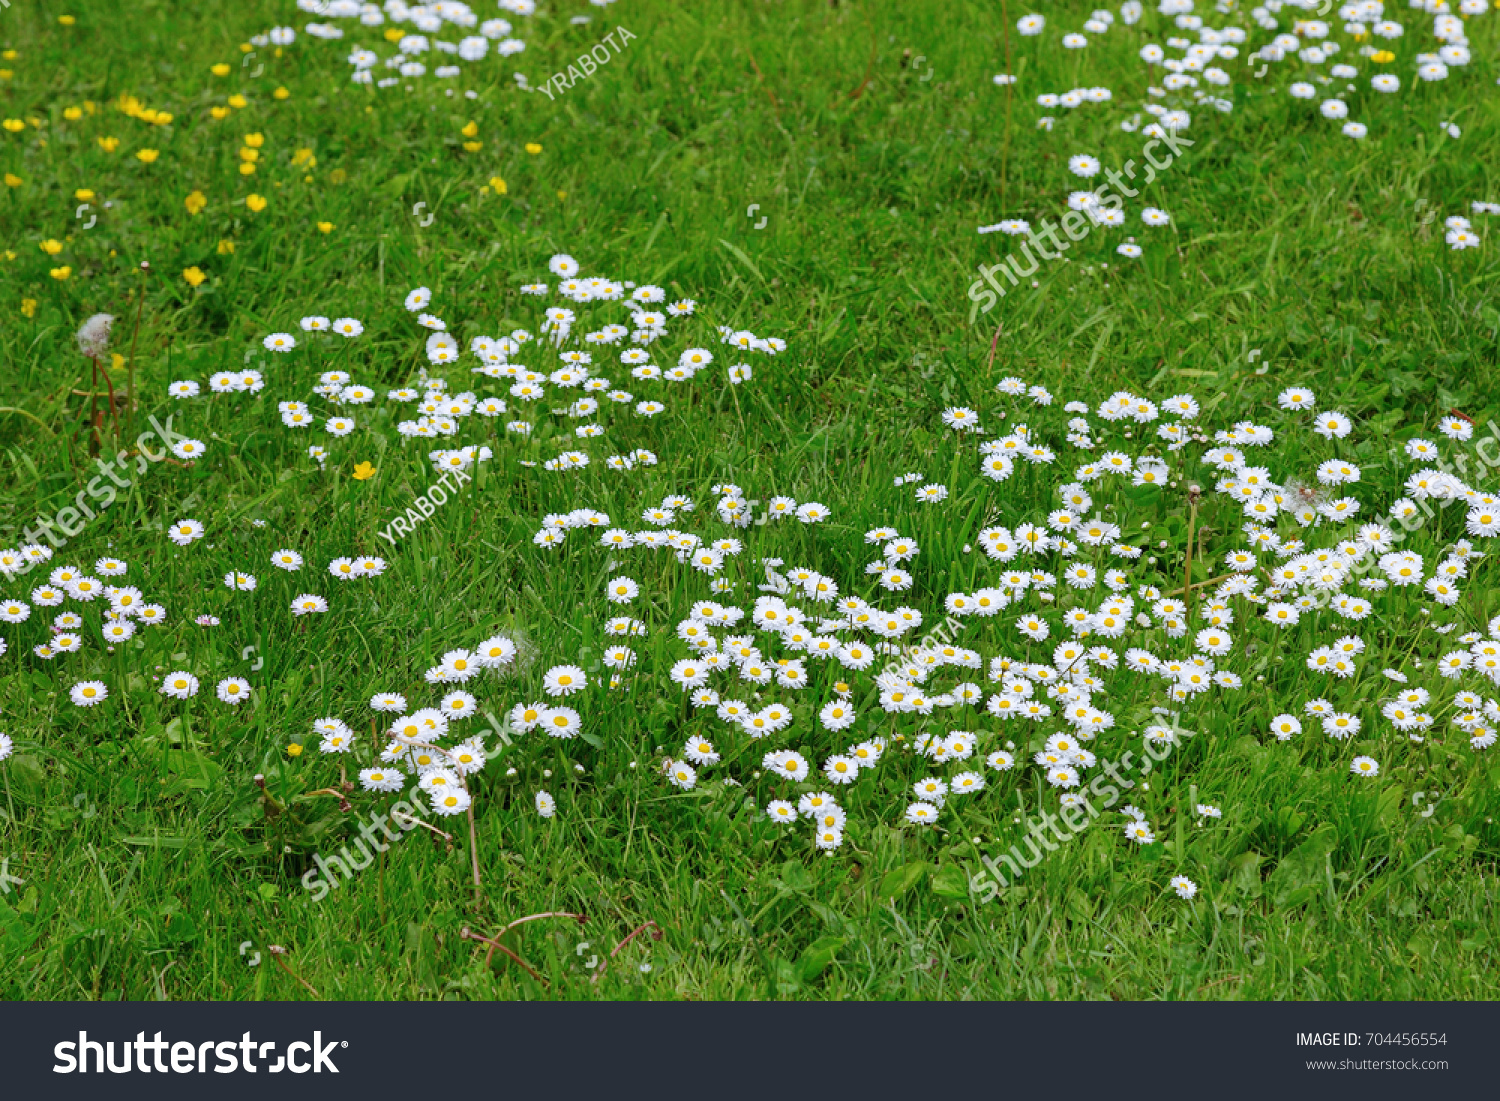 Meadow Flowers White Yellow Flowers Growing Stock Photo Royalty